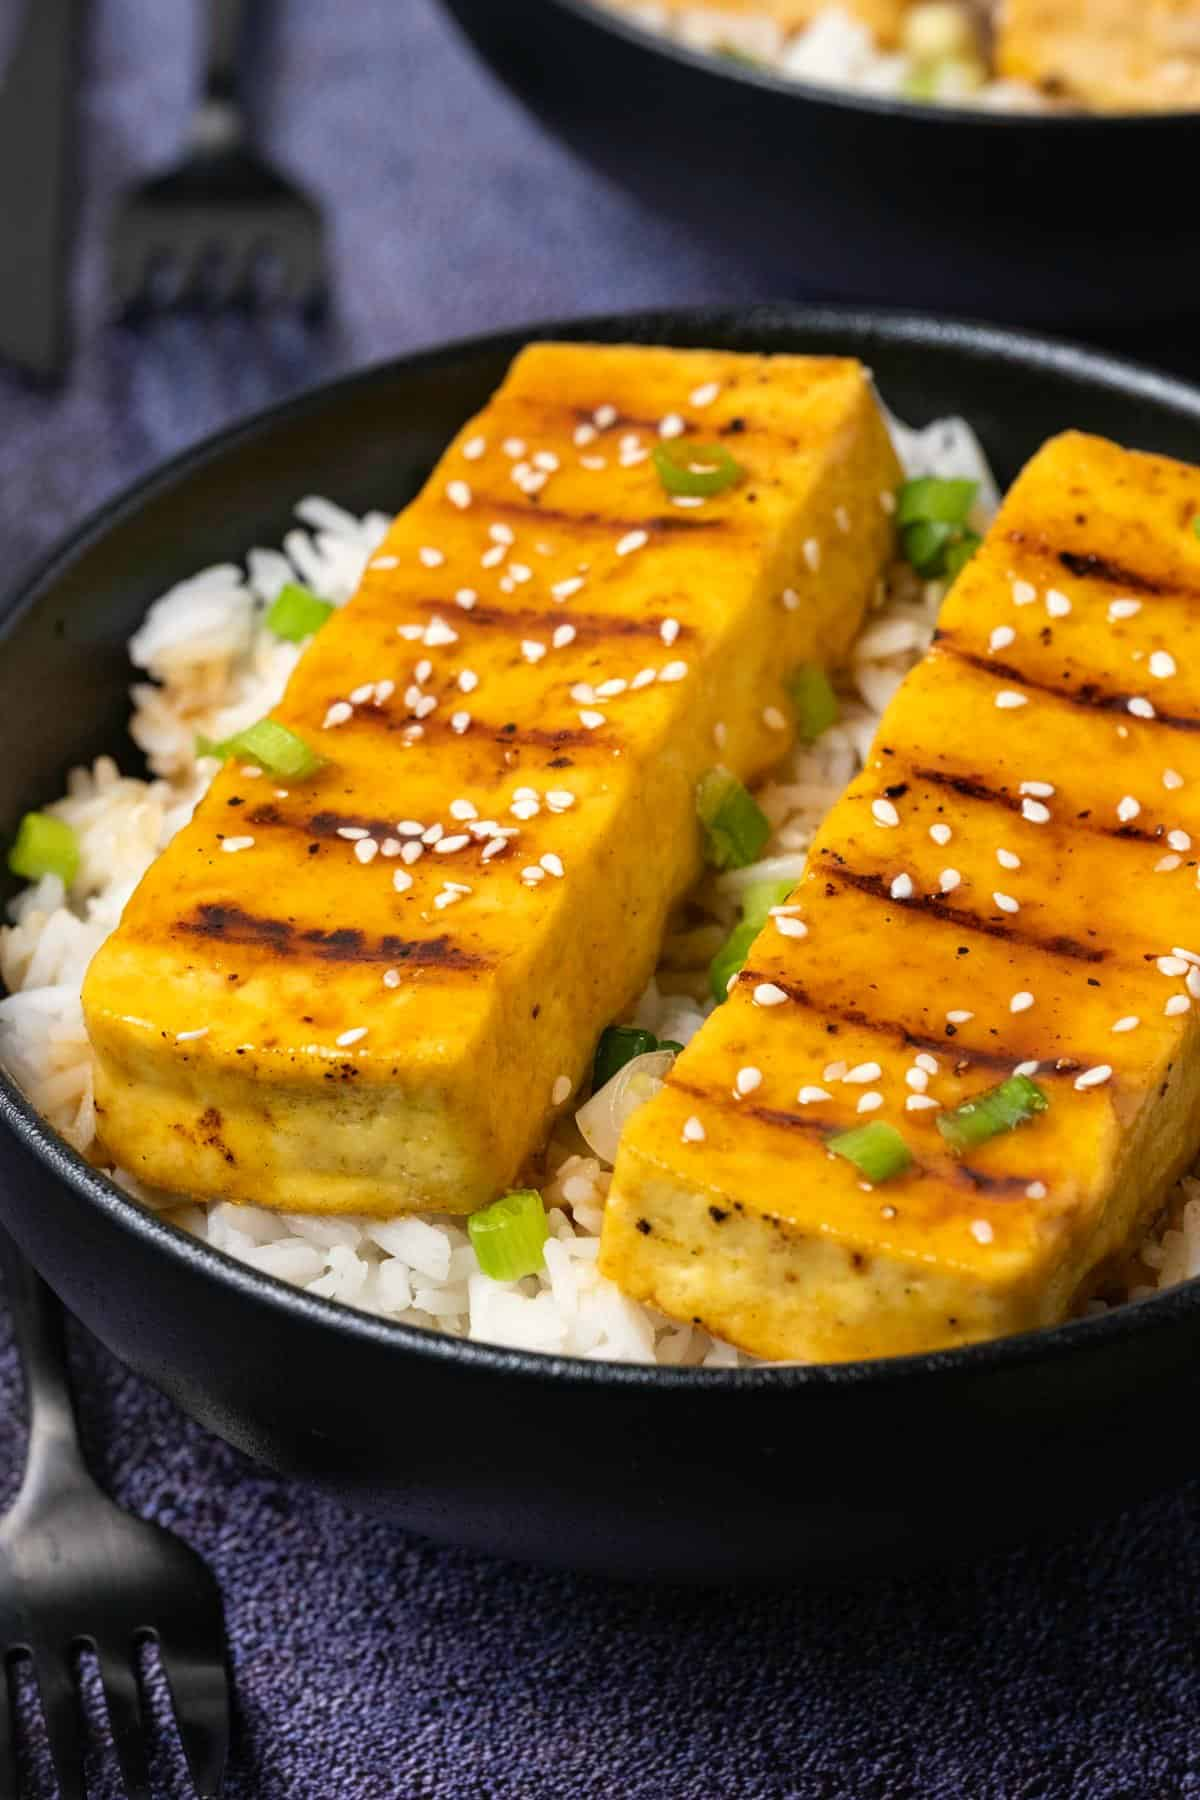 Grilled tofu with rice and green onions in a black bowl.